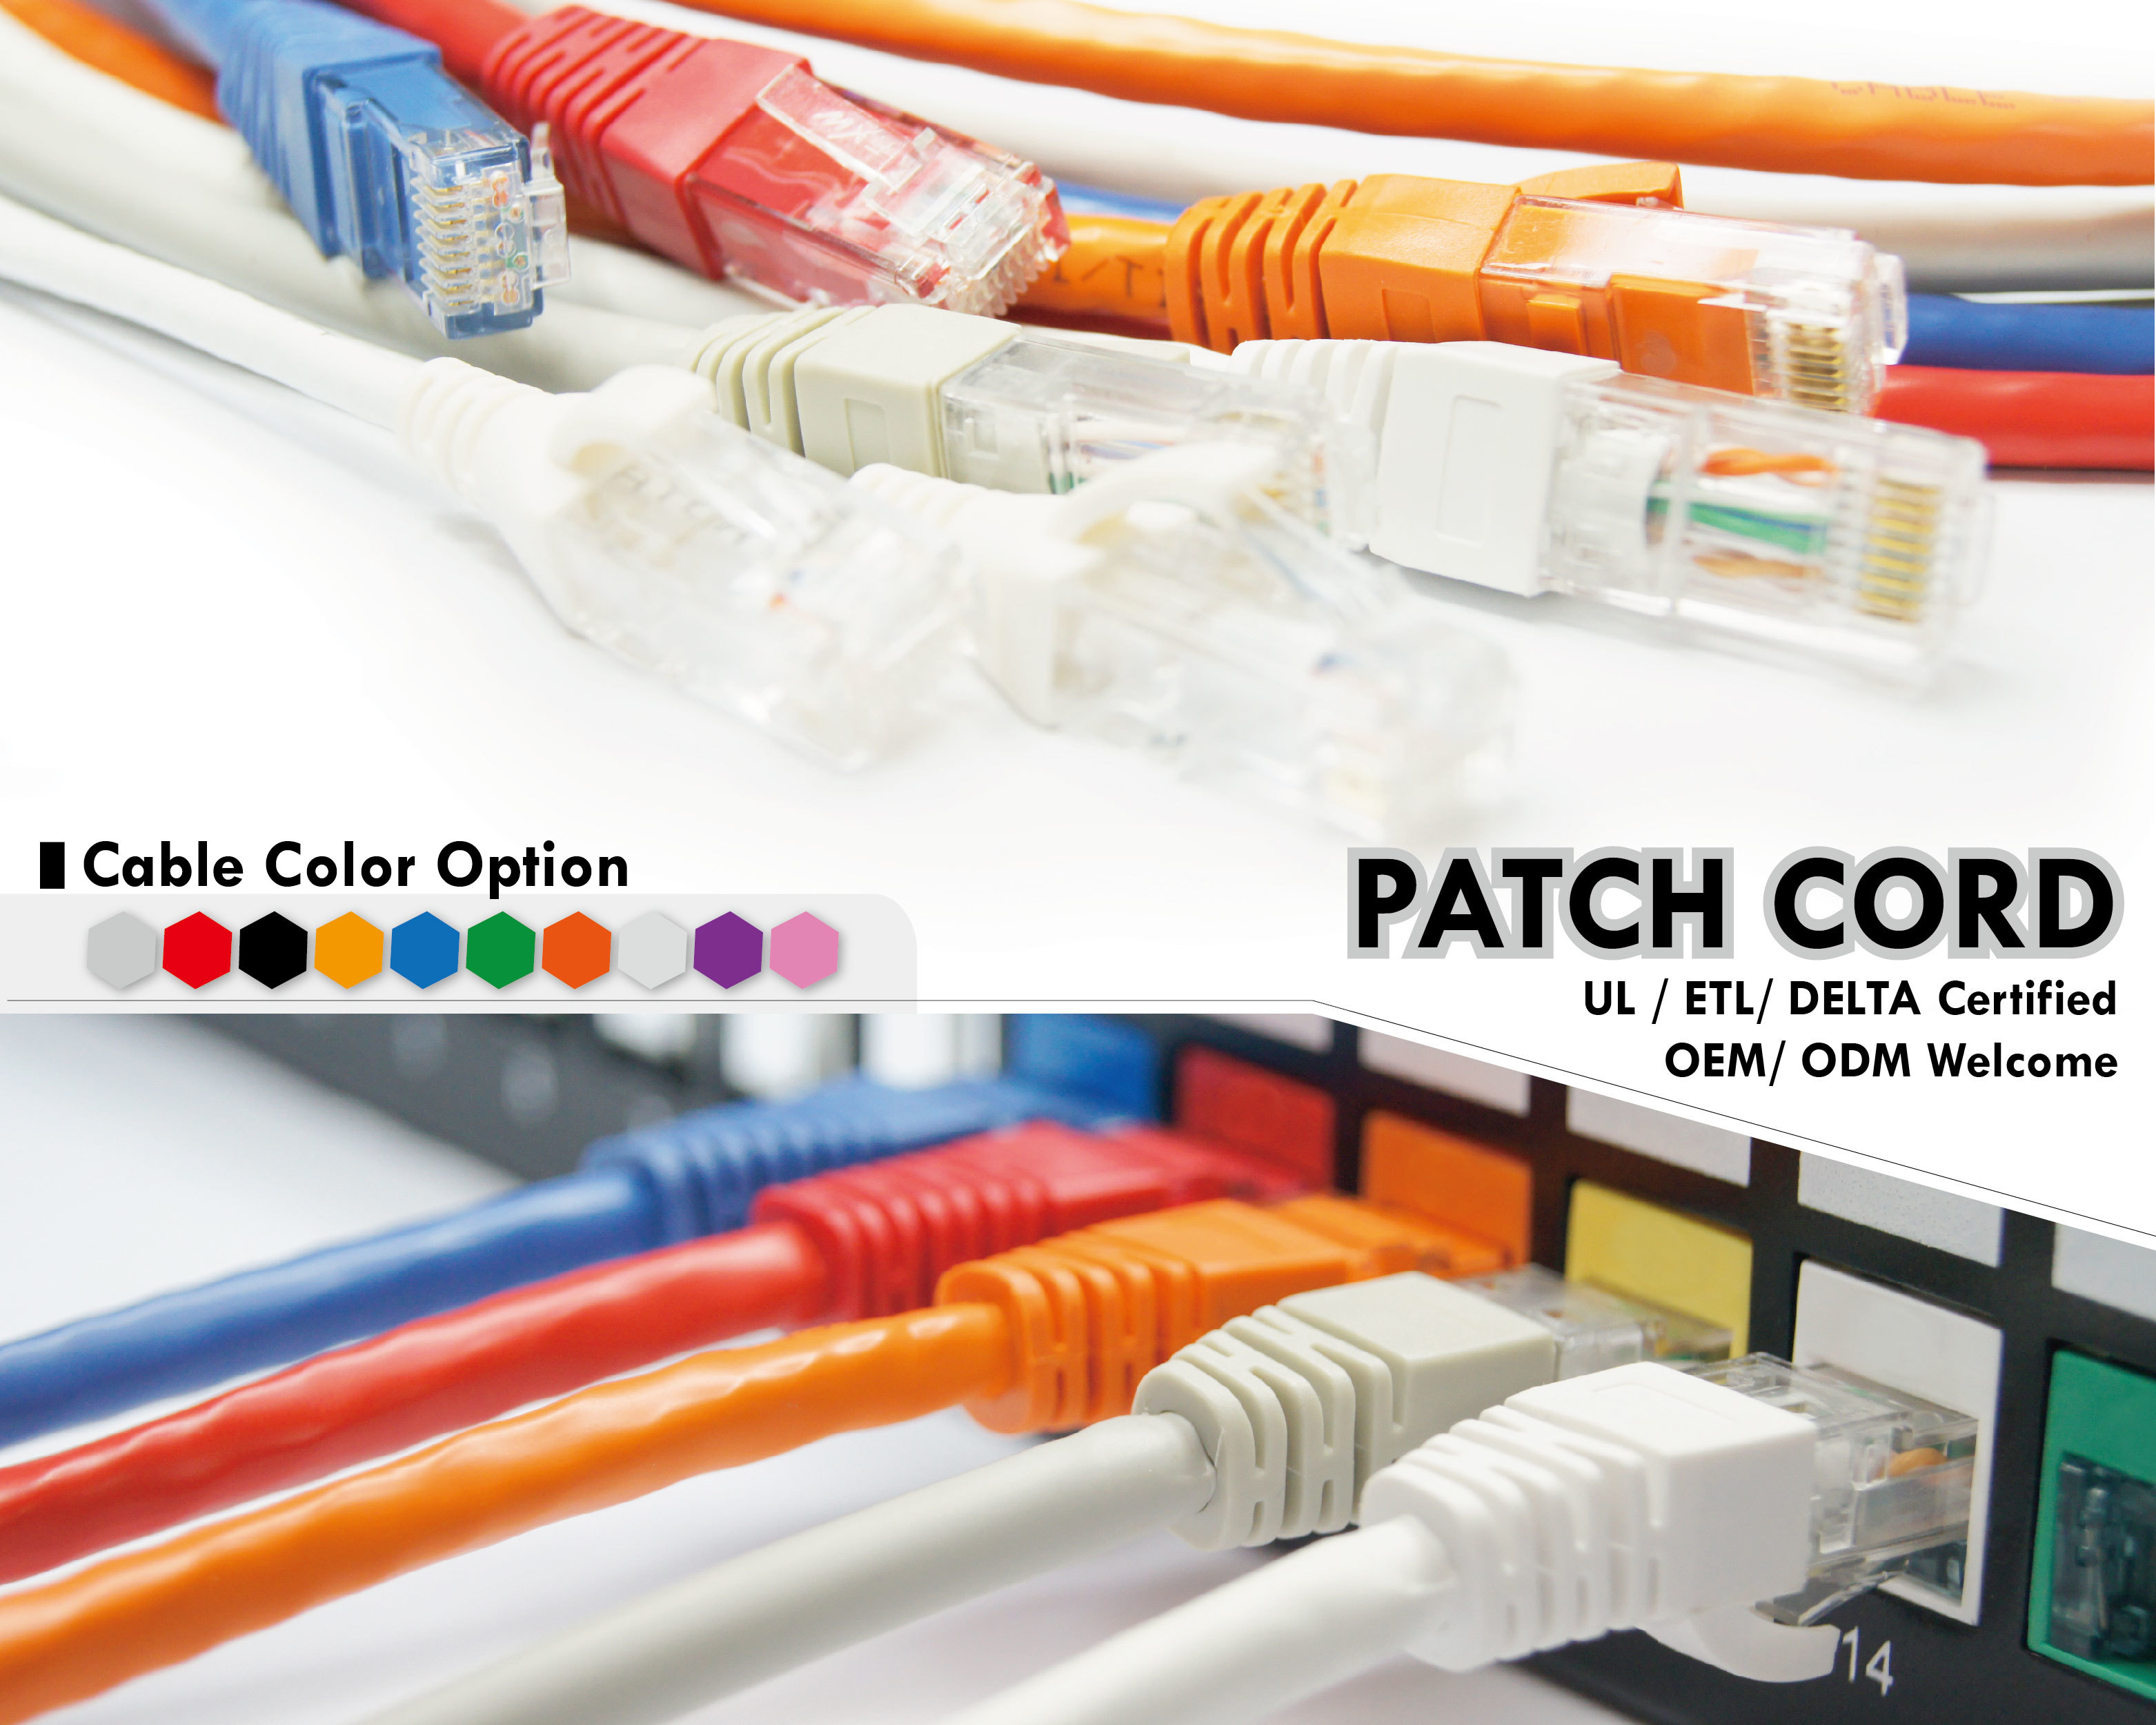 Cat6 Utp Patch Cord Manufacturersupplier Panel Cable Management Together With Cat 6